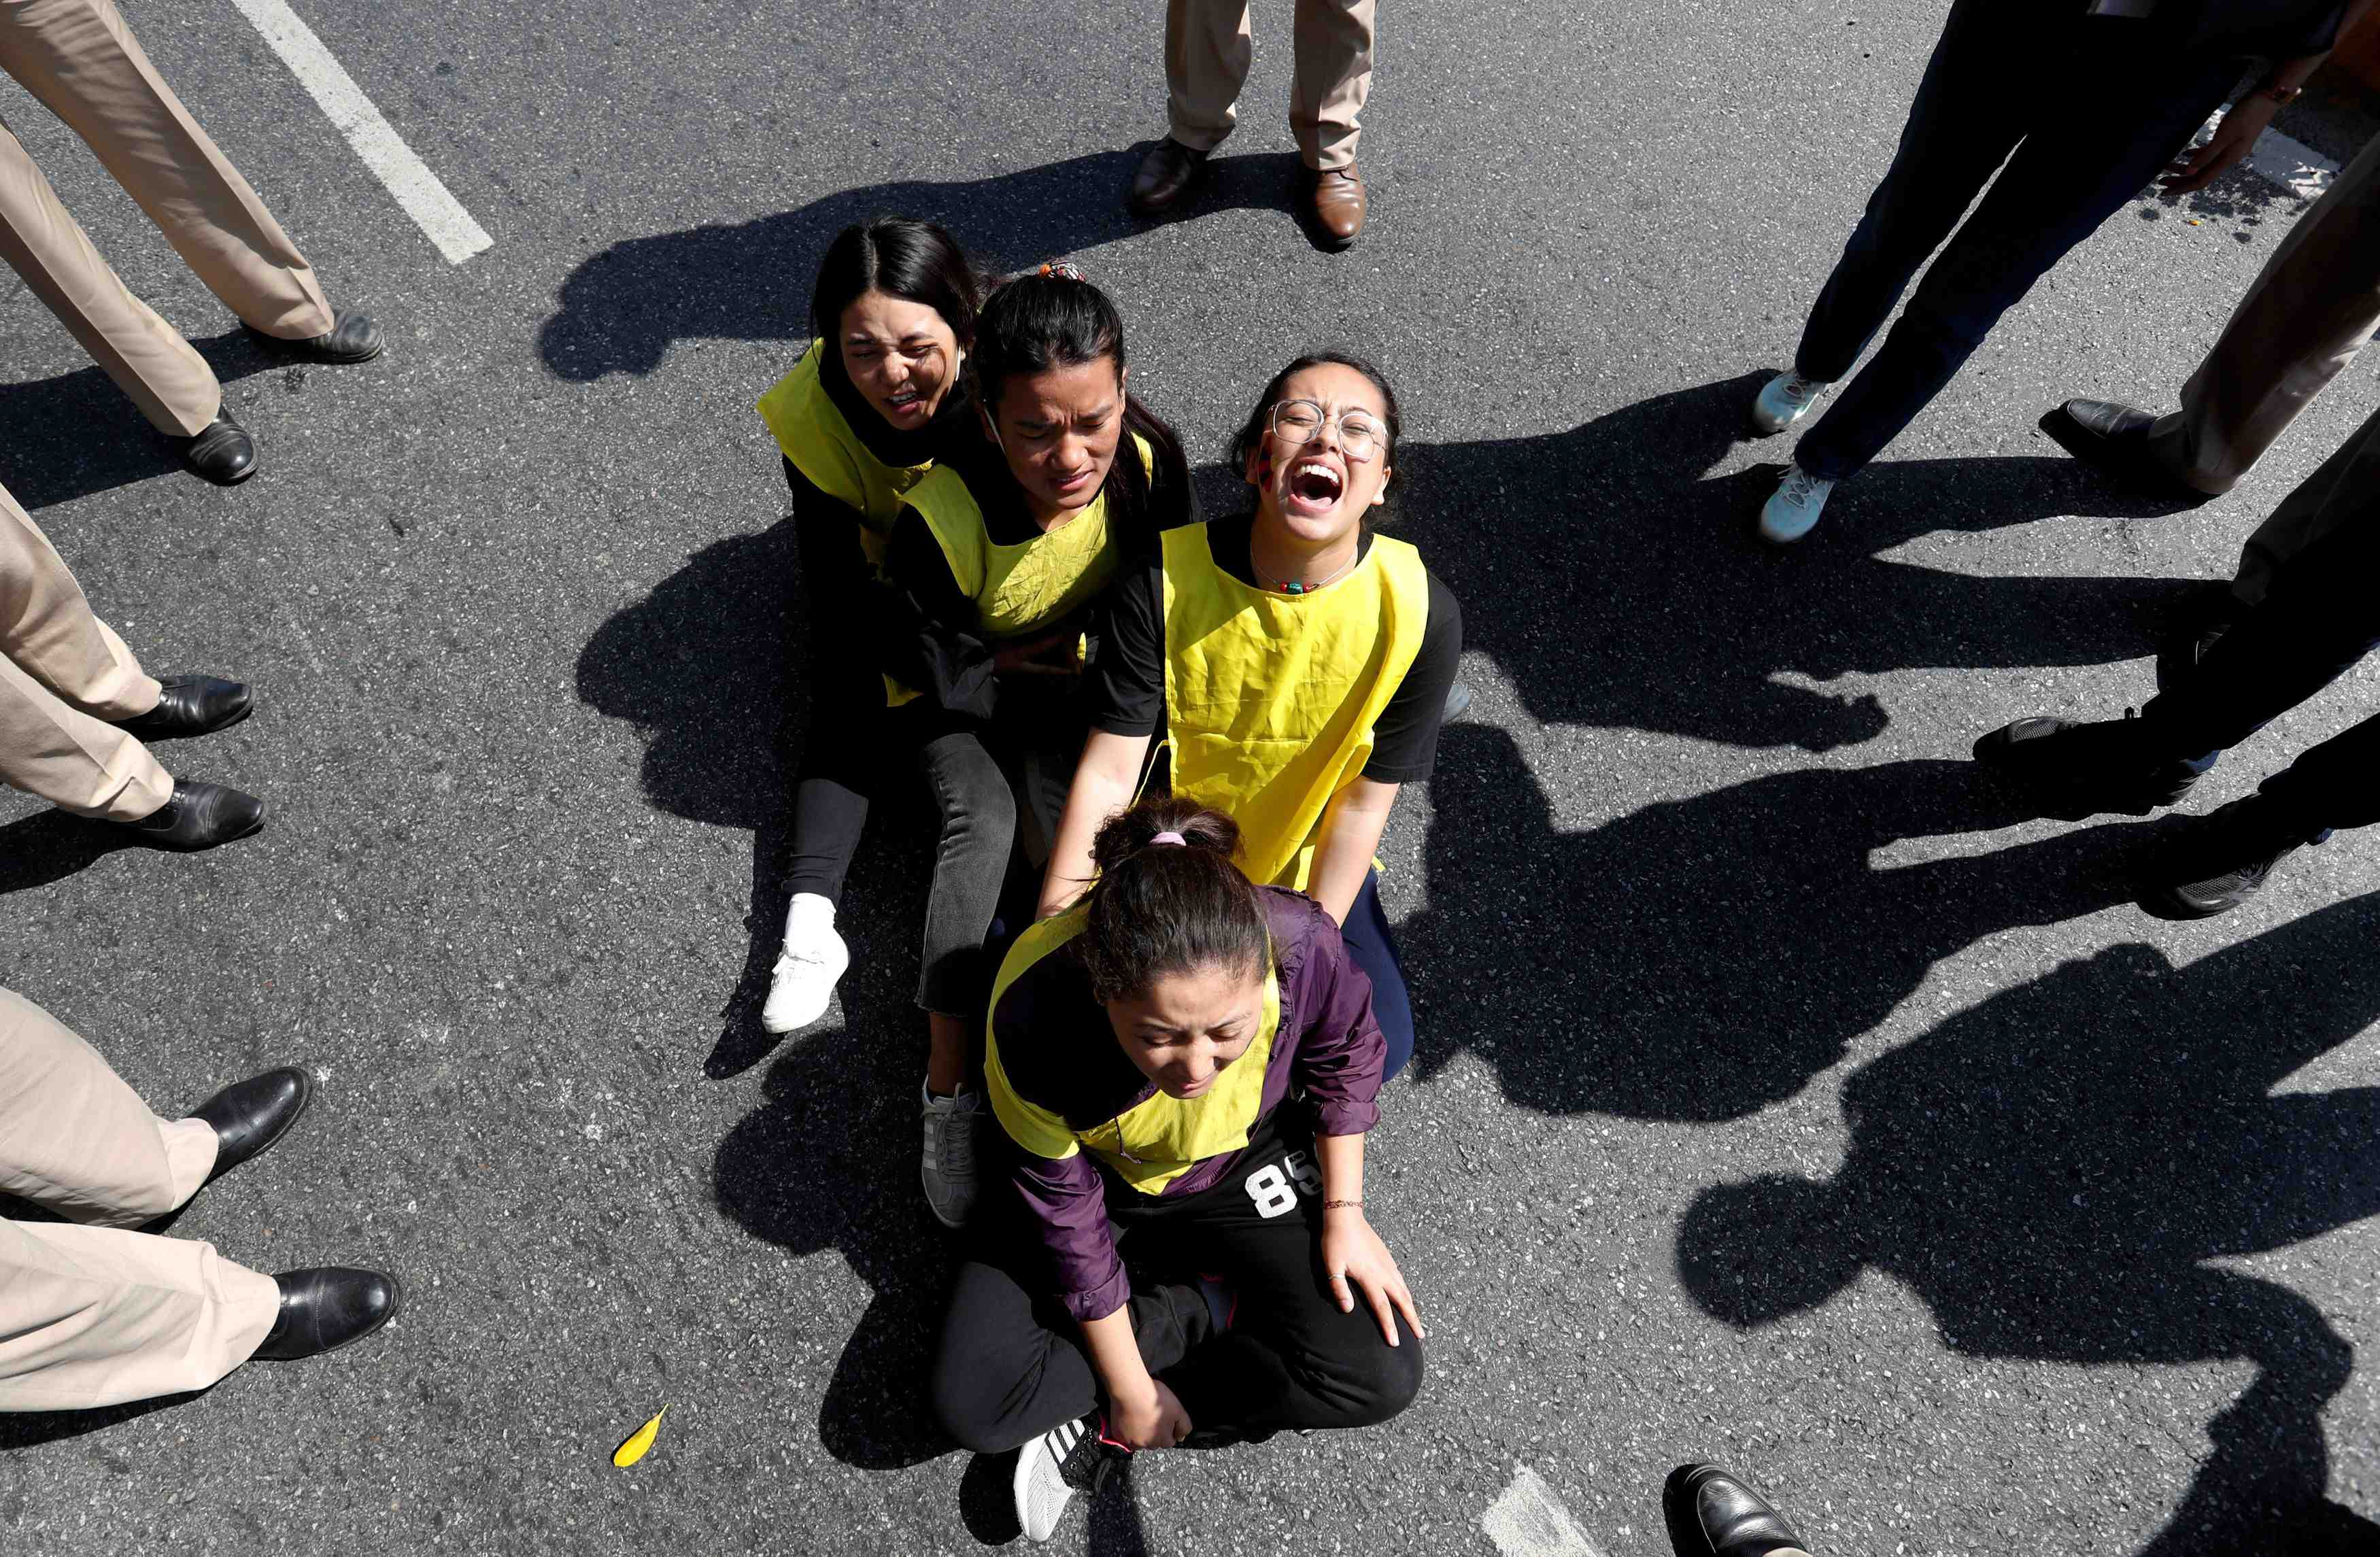 Tibetans shout slogans during a protest in New Delhi